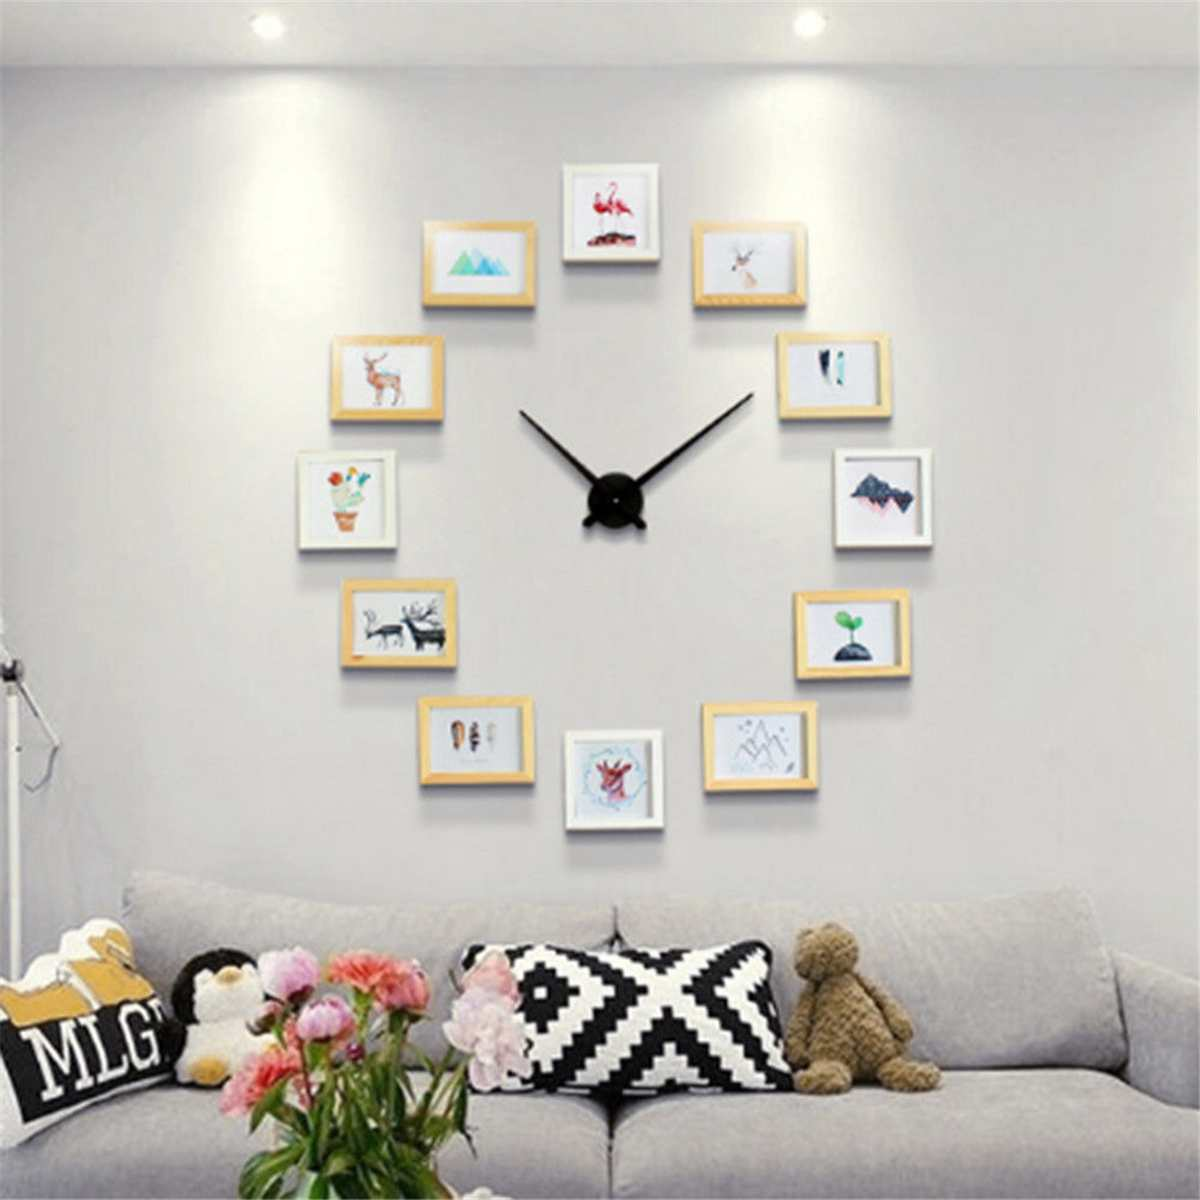 2019 new diy wall clock modern design diy photo frame. Black Bedroom Furniture Sets. Home Design Ideas